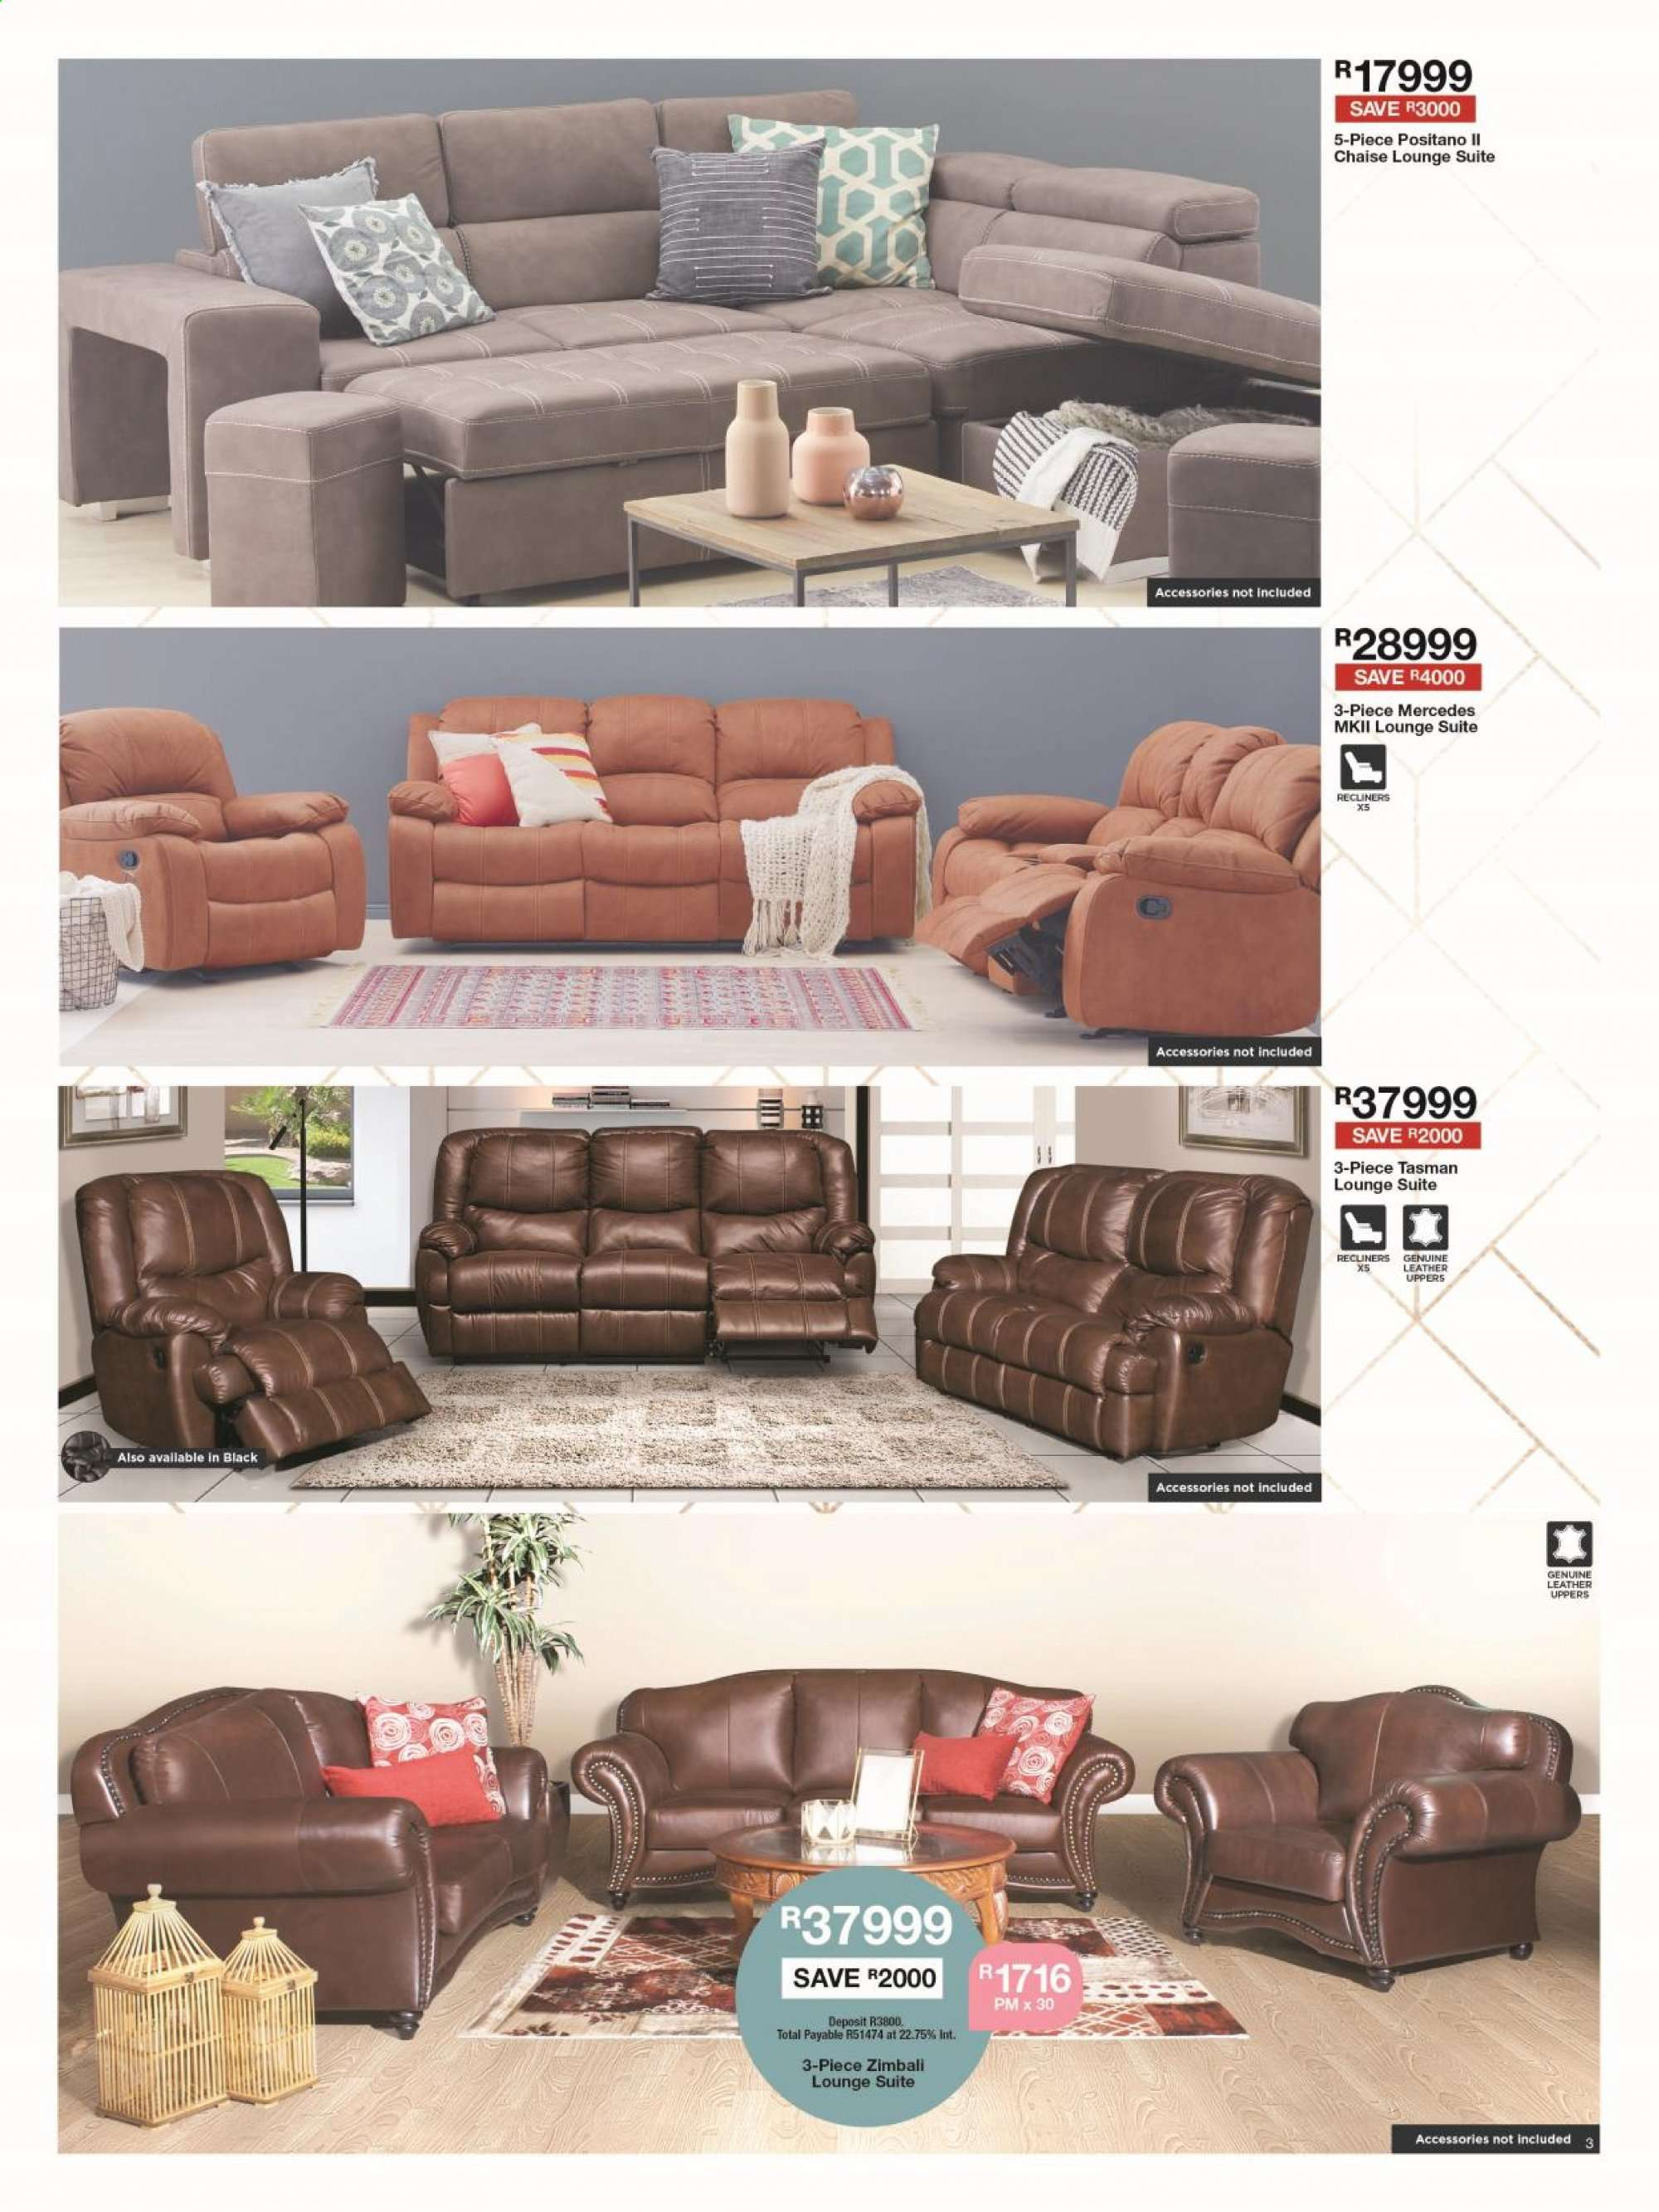 House & Home catalogue  - 07.23.2019 - 08.04.2019. Page 3.